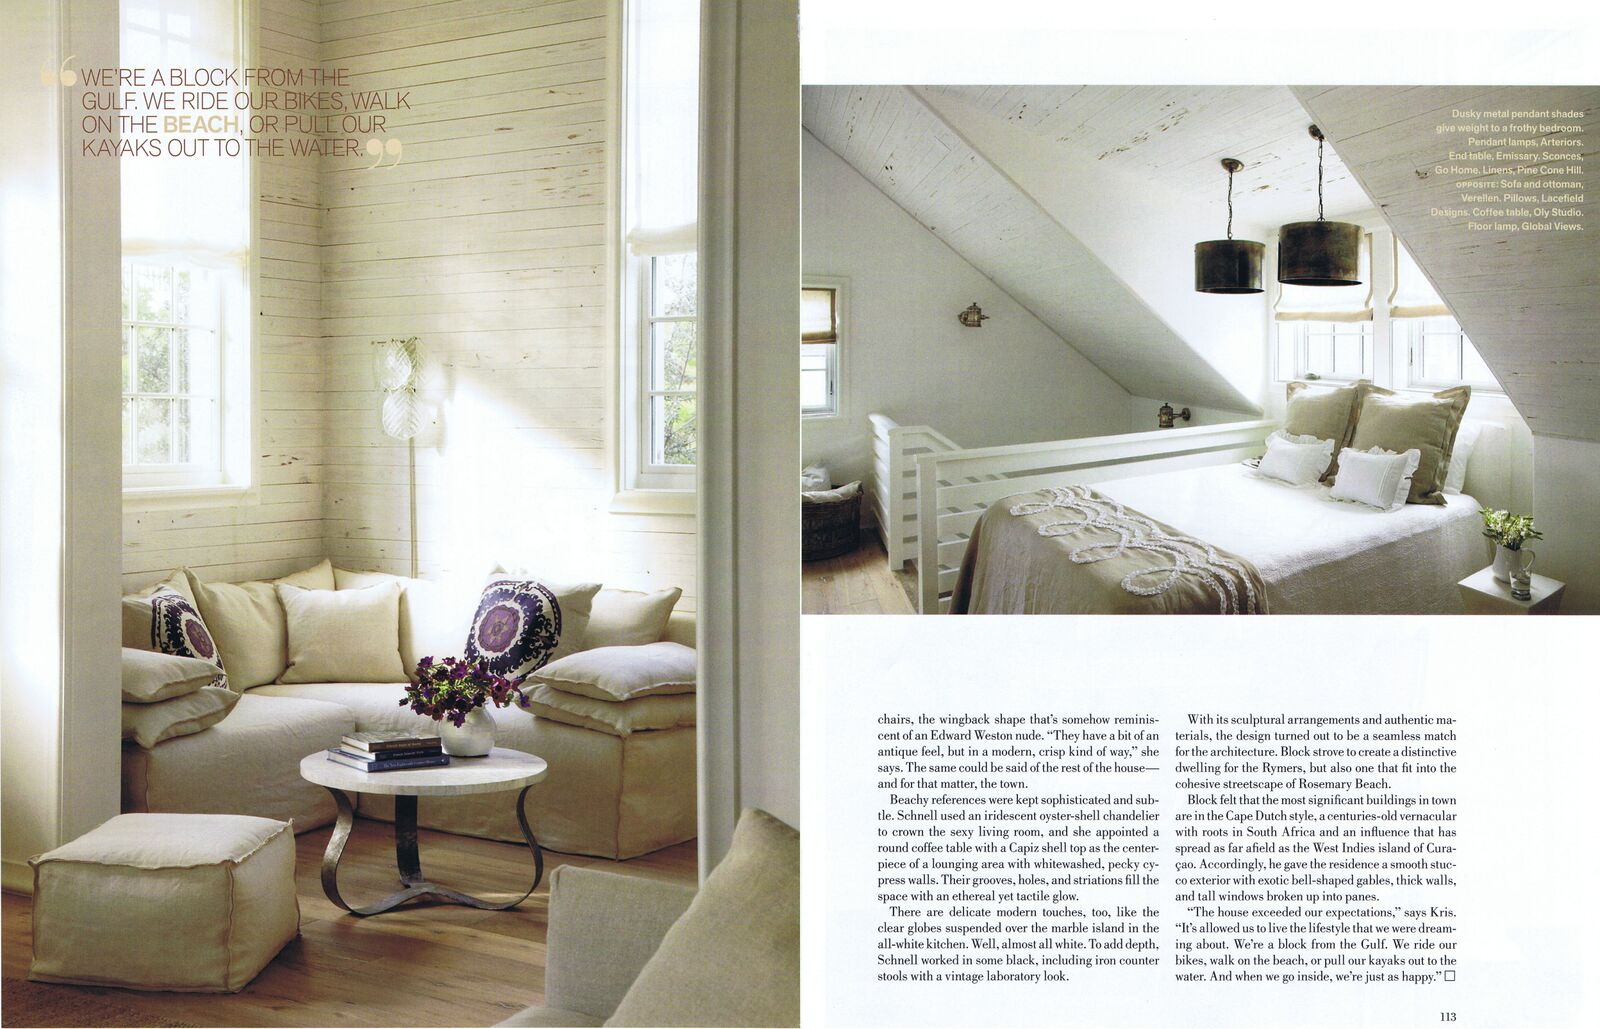 Beach House-Page 112-113_preview.jpg